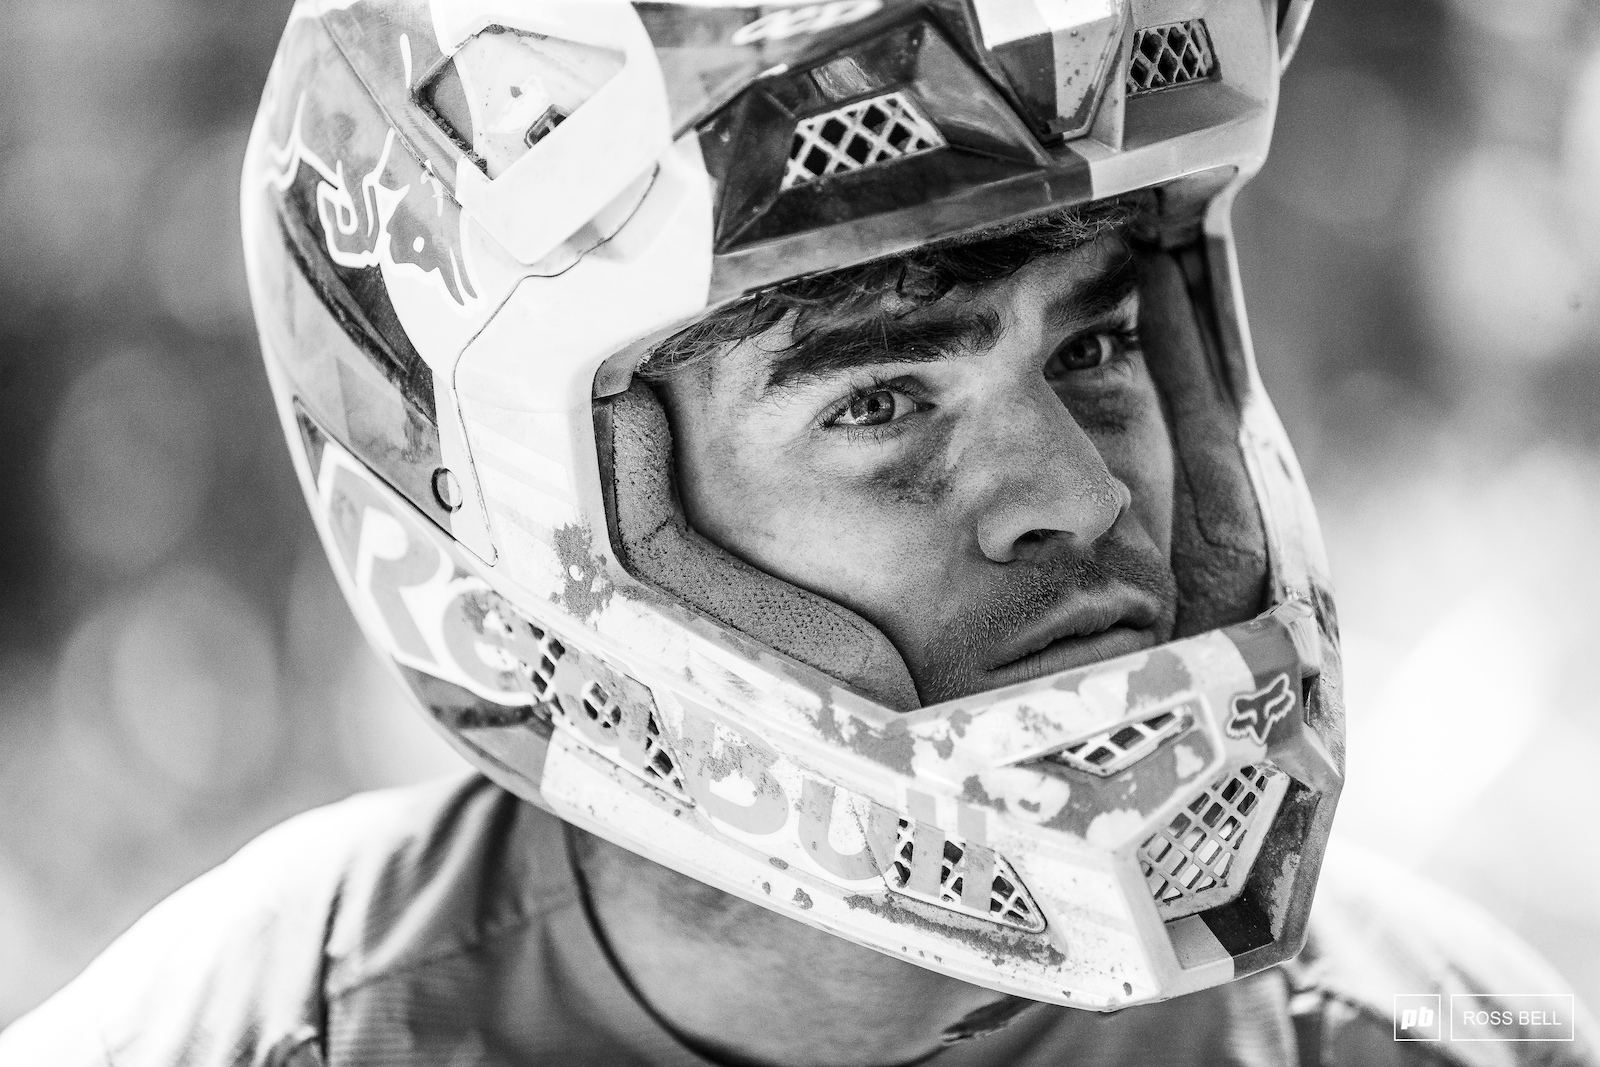 Loic Bruni was so badly coated head to toe in dust after his crash that he had to go back to his hotel and shower.